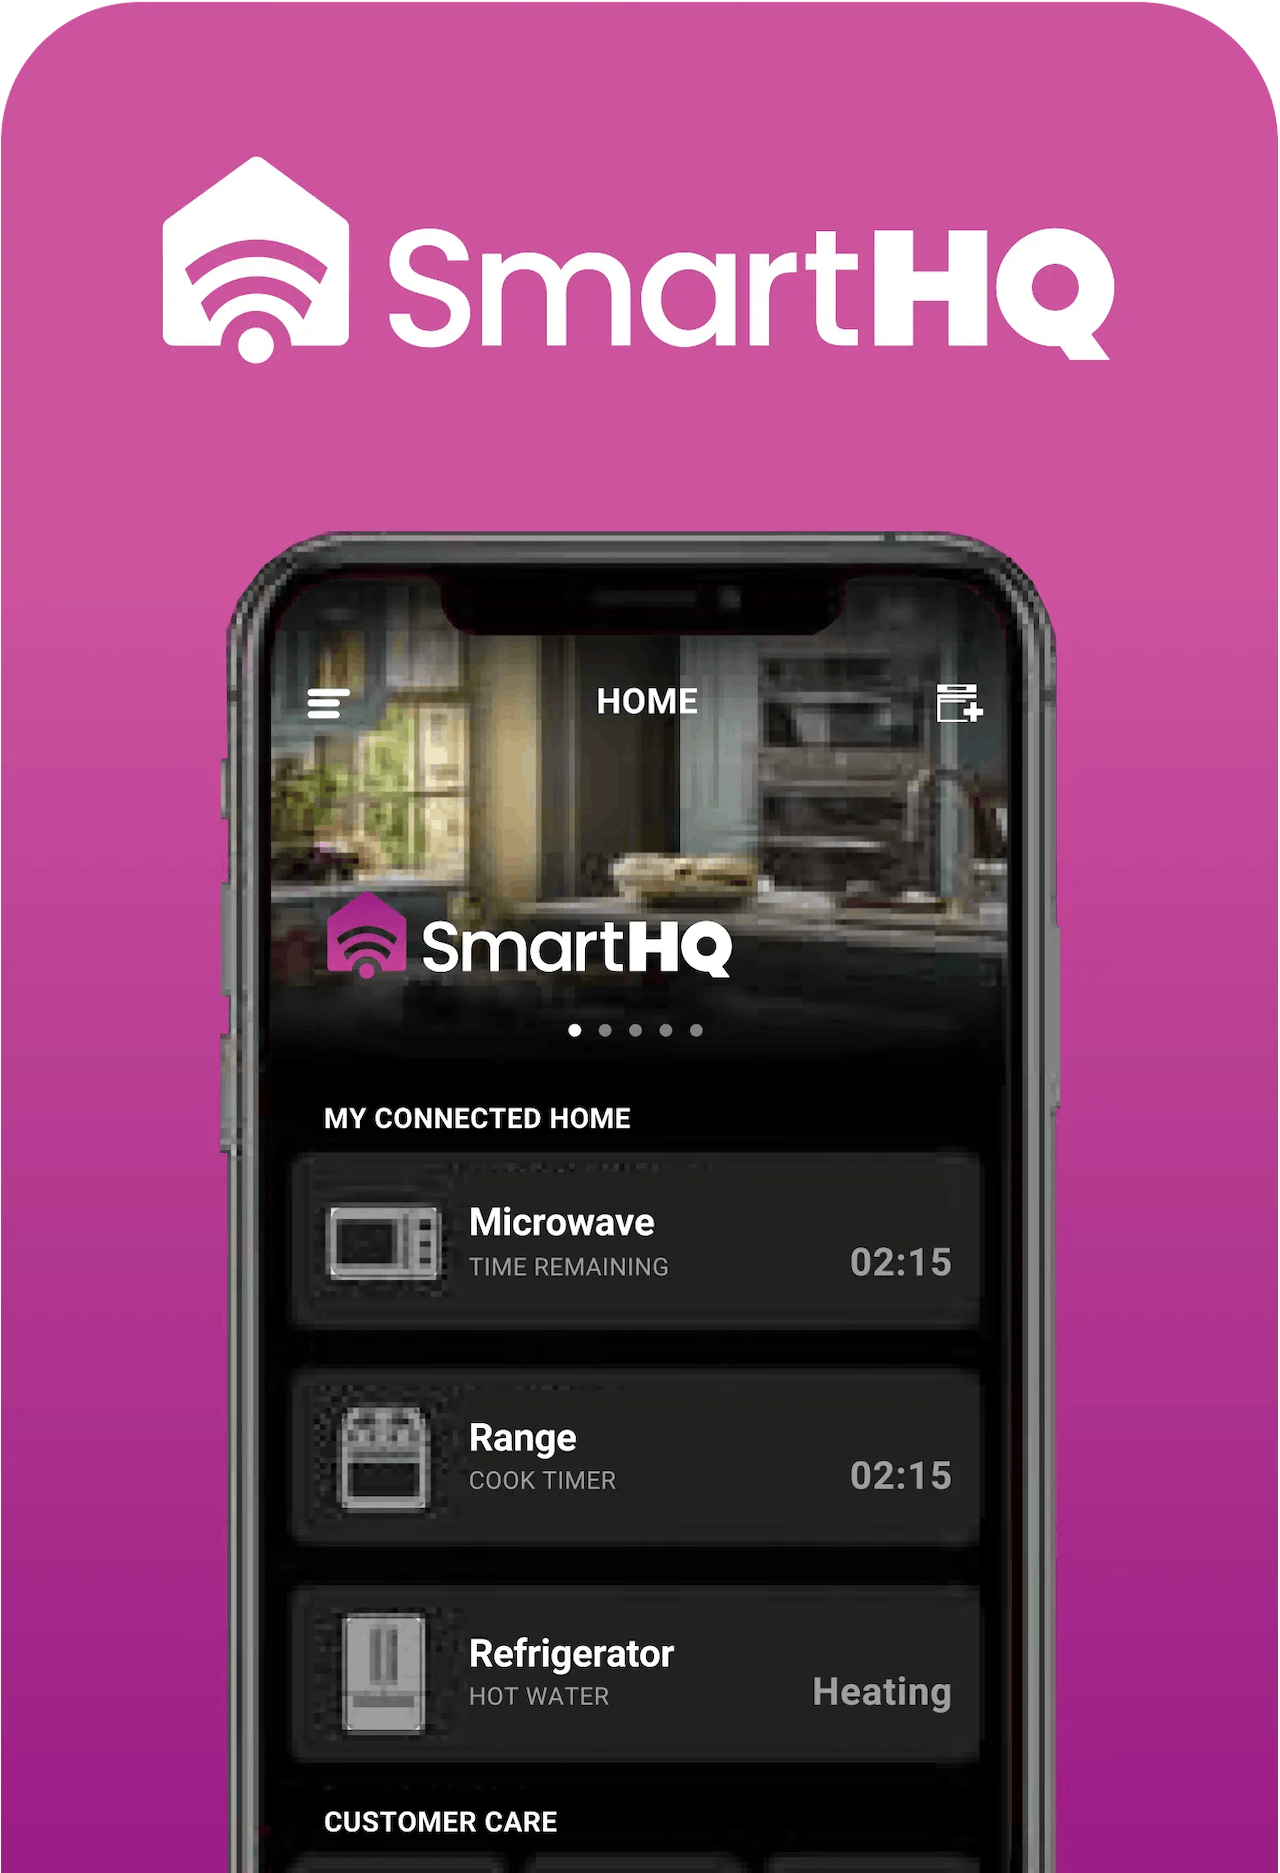 SmartHQ Home screen